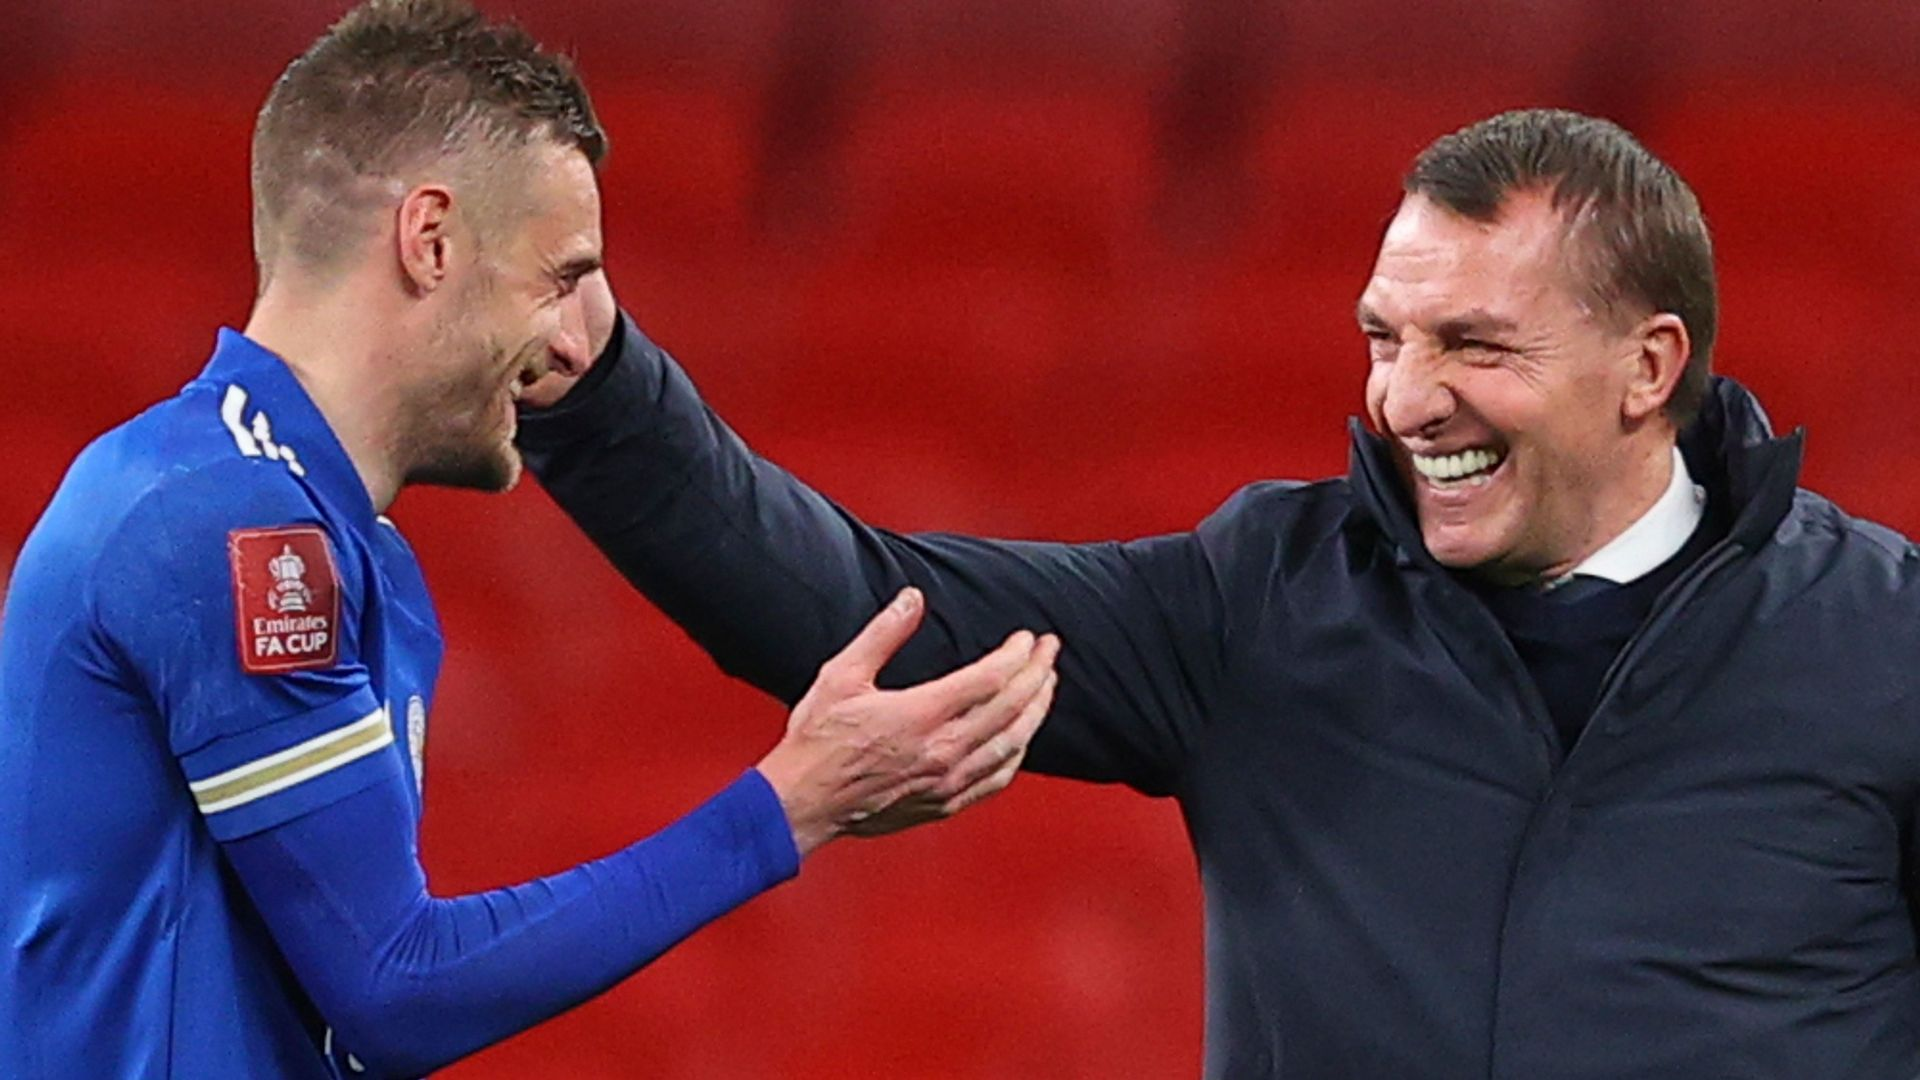 FA Cup win 'would propel Rodgers to another level'